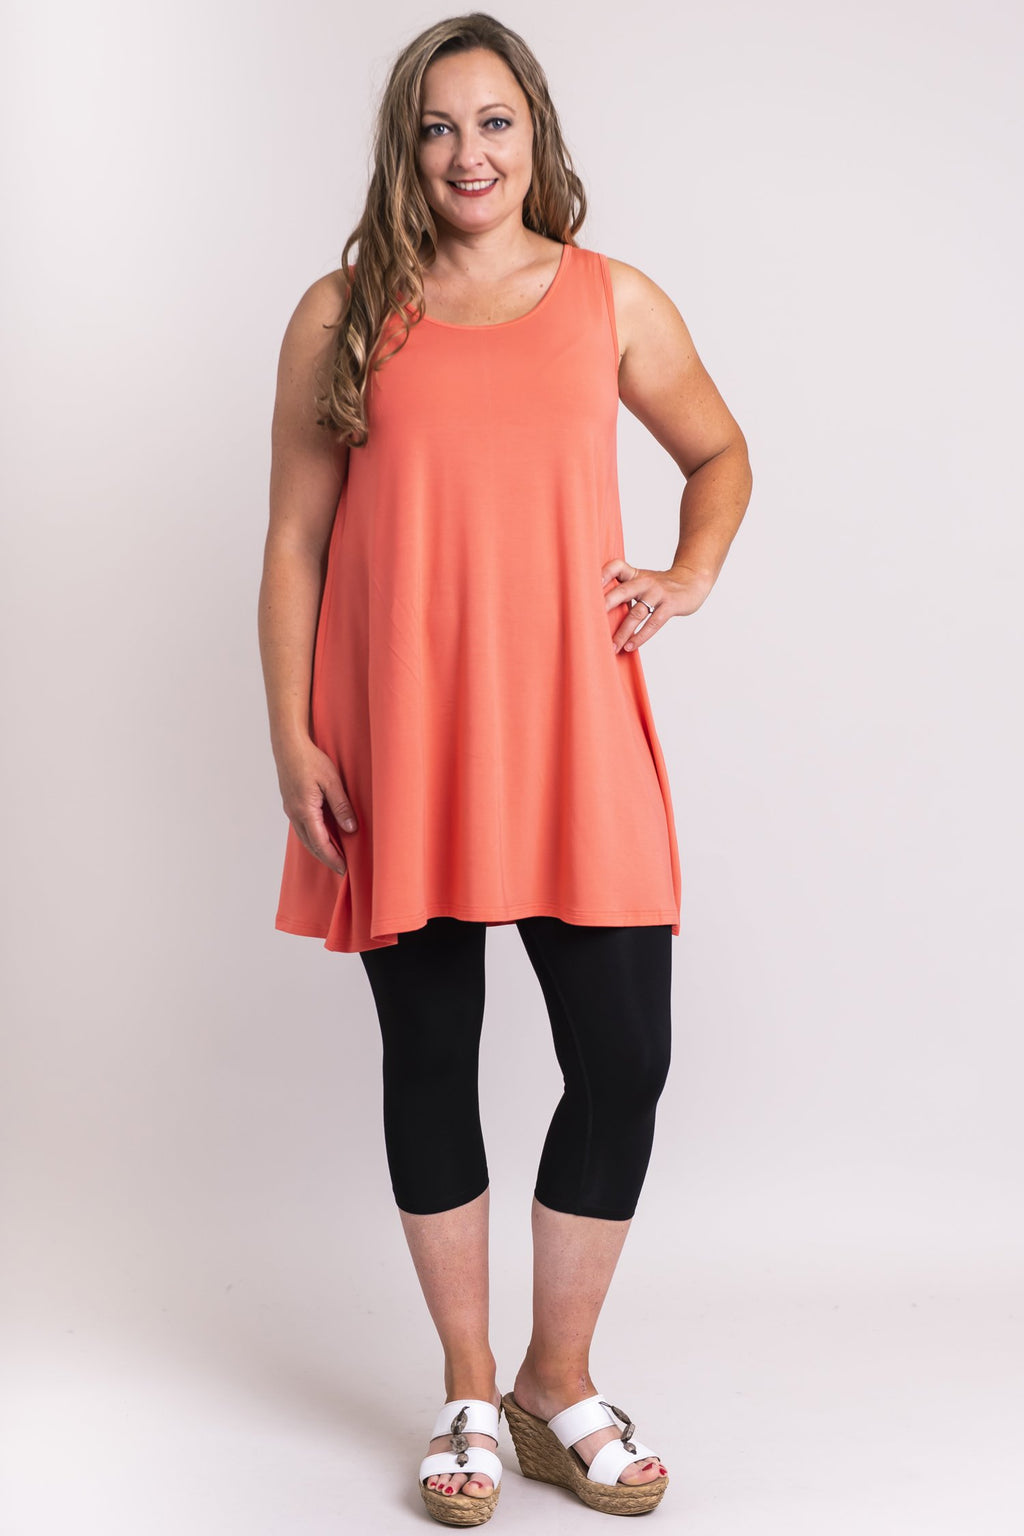 Spirit Dress, Coral, Bamboo Modal